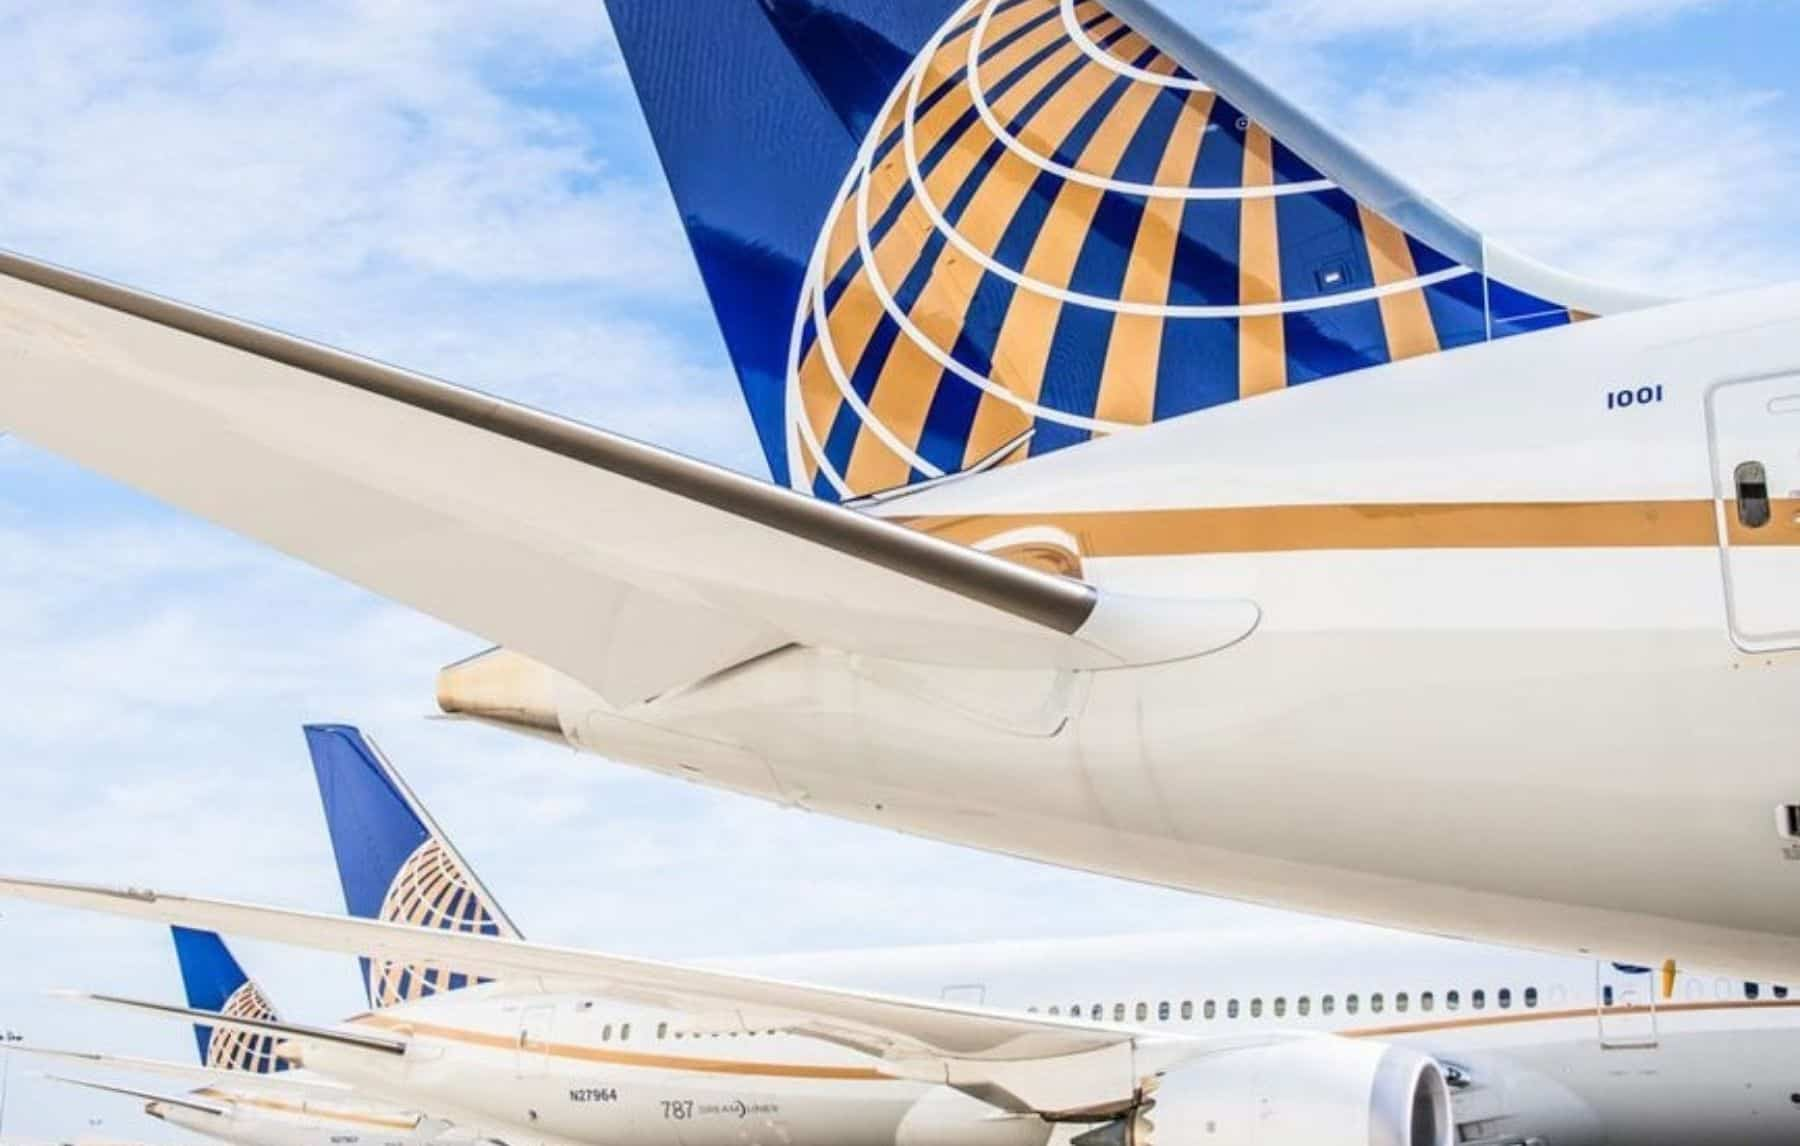 United Airlines Announces Eight New Routes And Increases Flights To 19 Destinations Airline Revenue Management